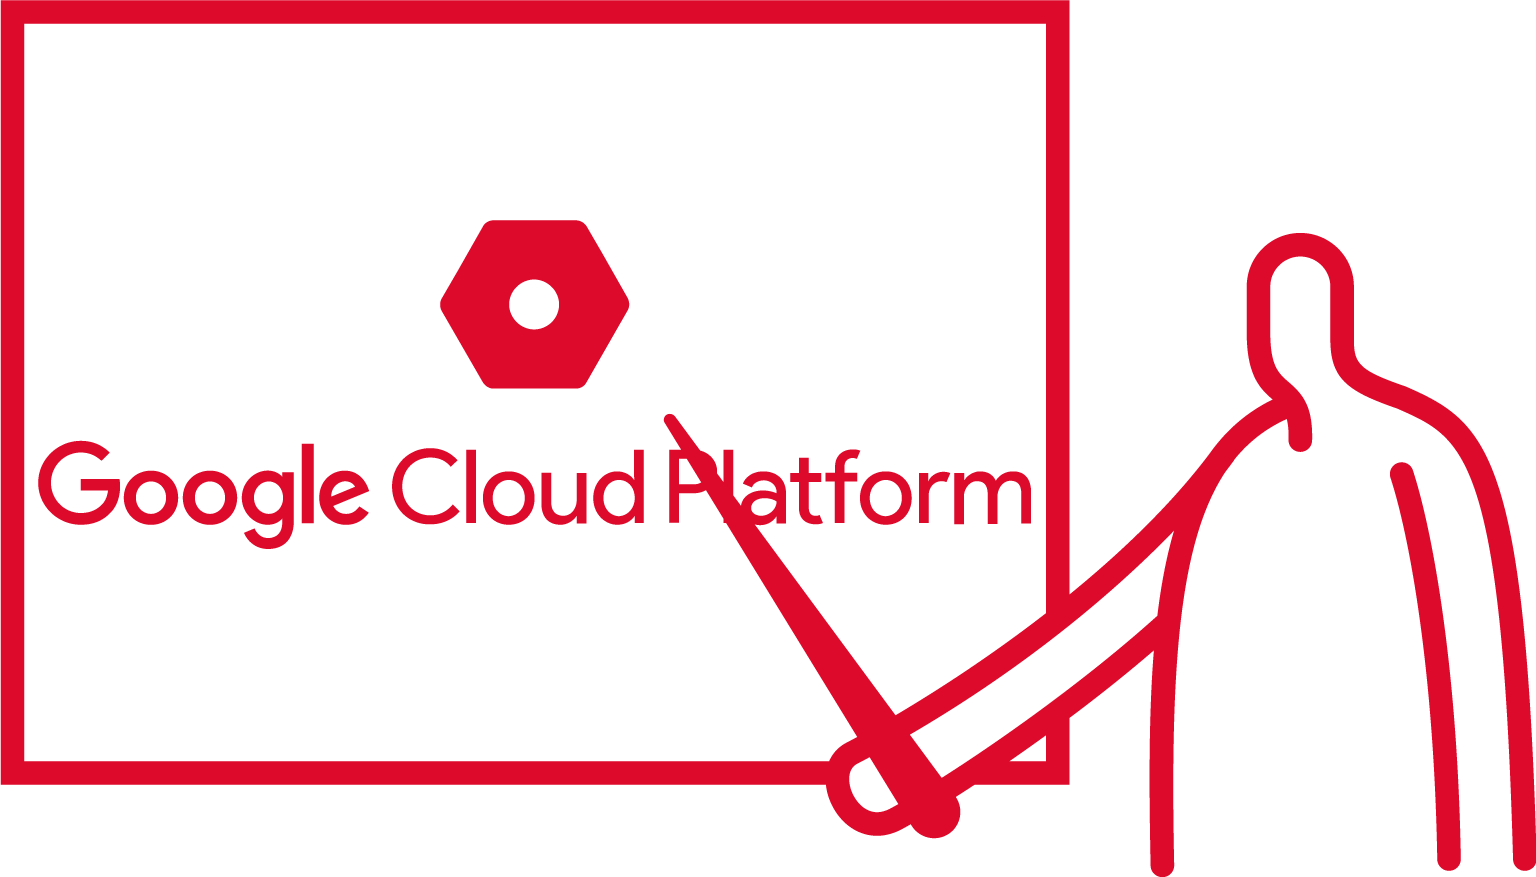 Why Google Cloud Platform